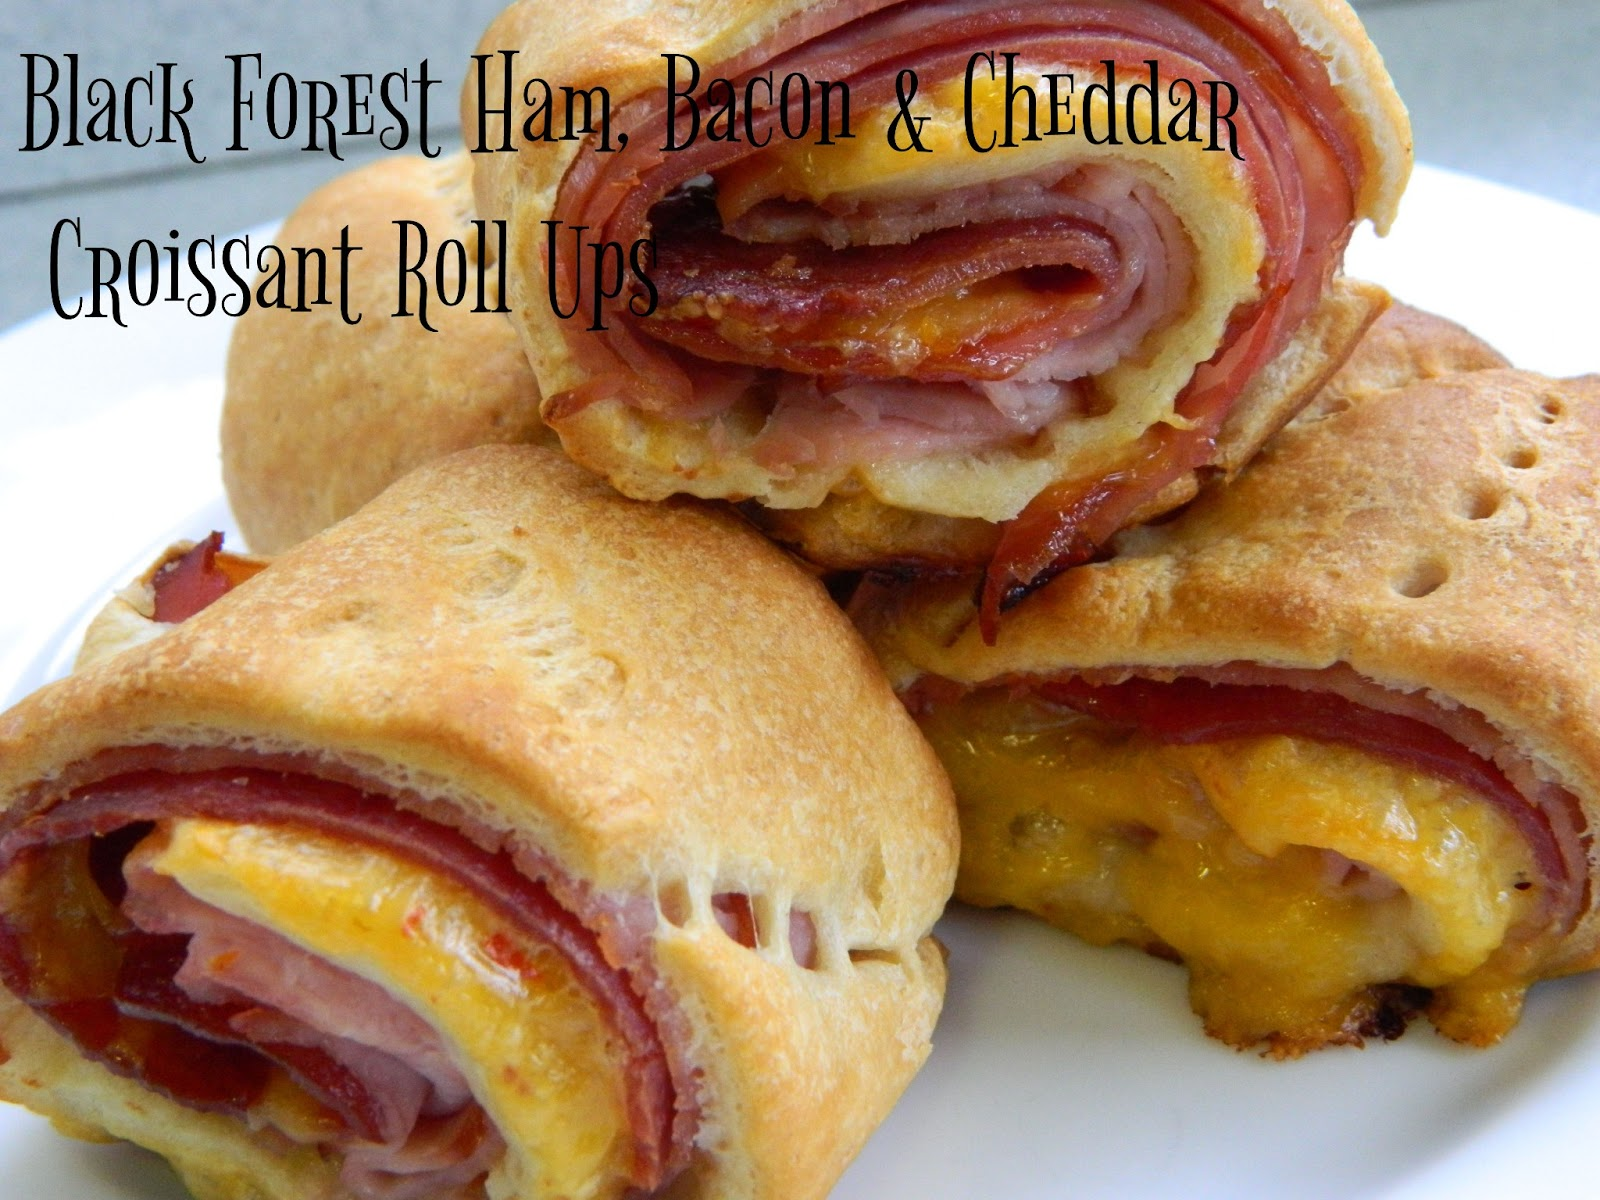 ... Favorite Things: Black Forest Ham, Bacon & Cheddar Croissant Roll Ups